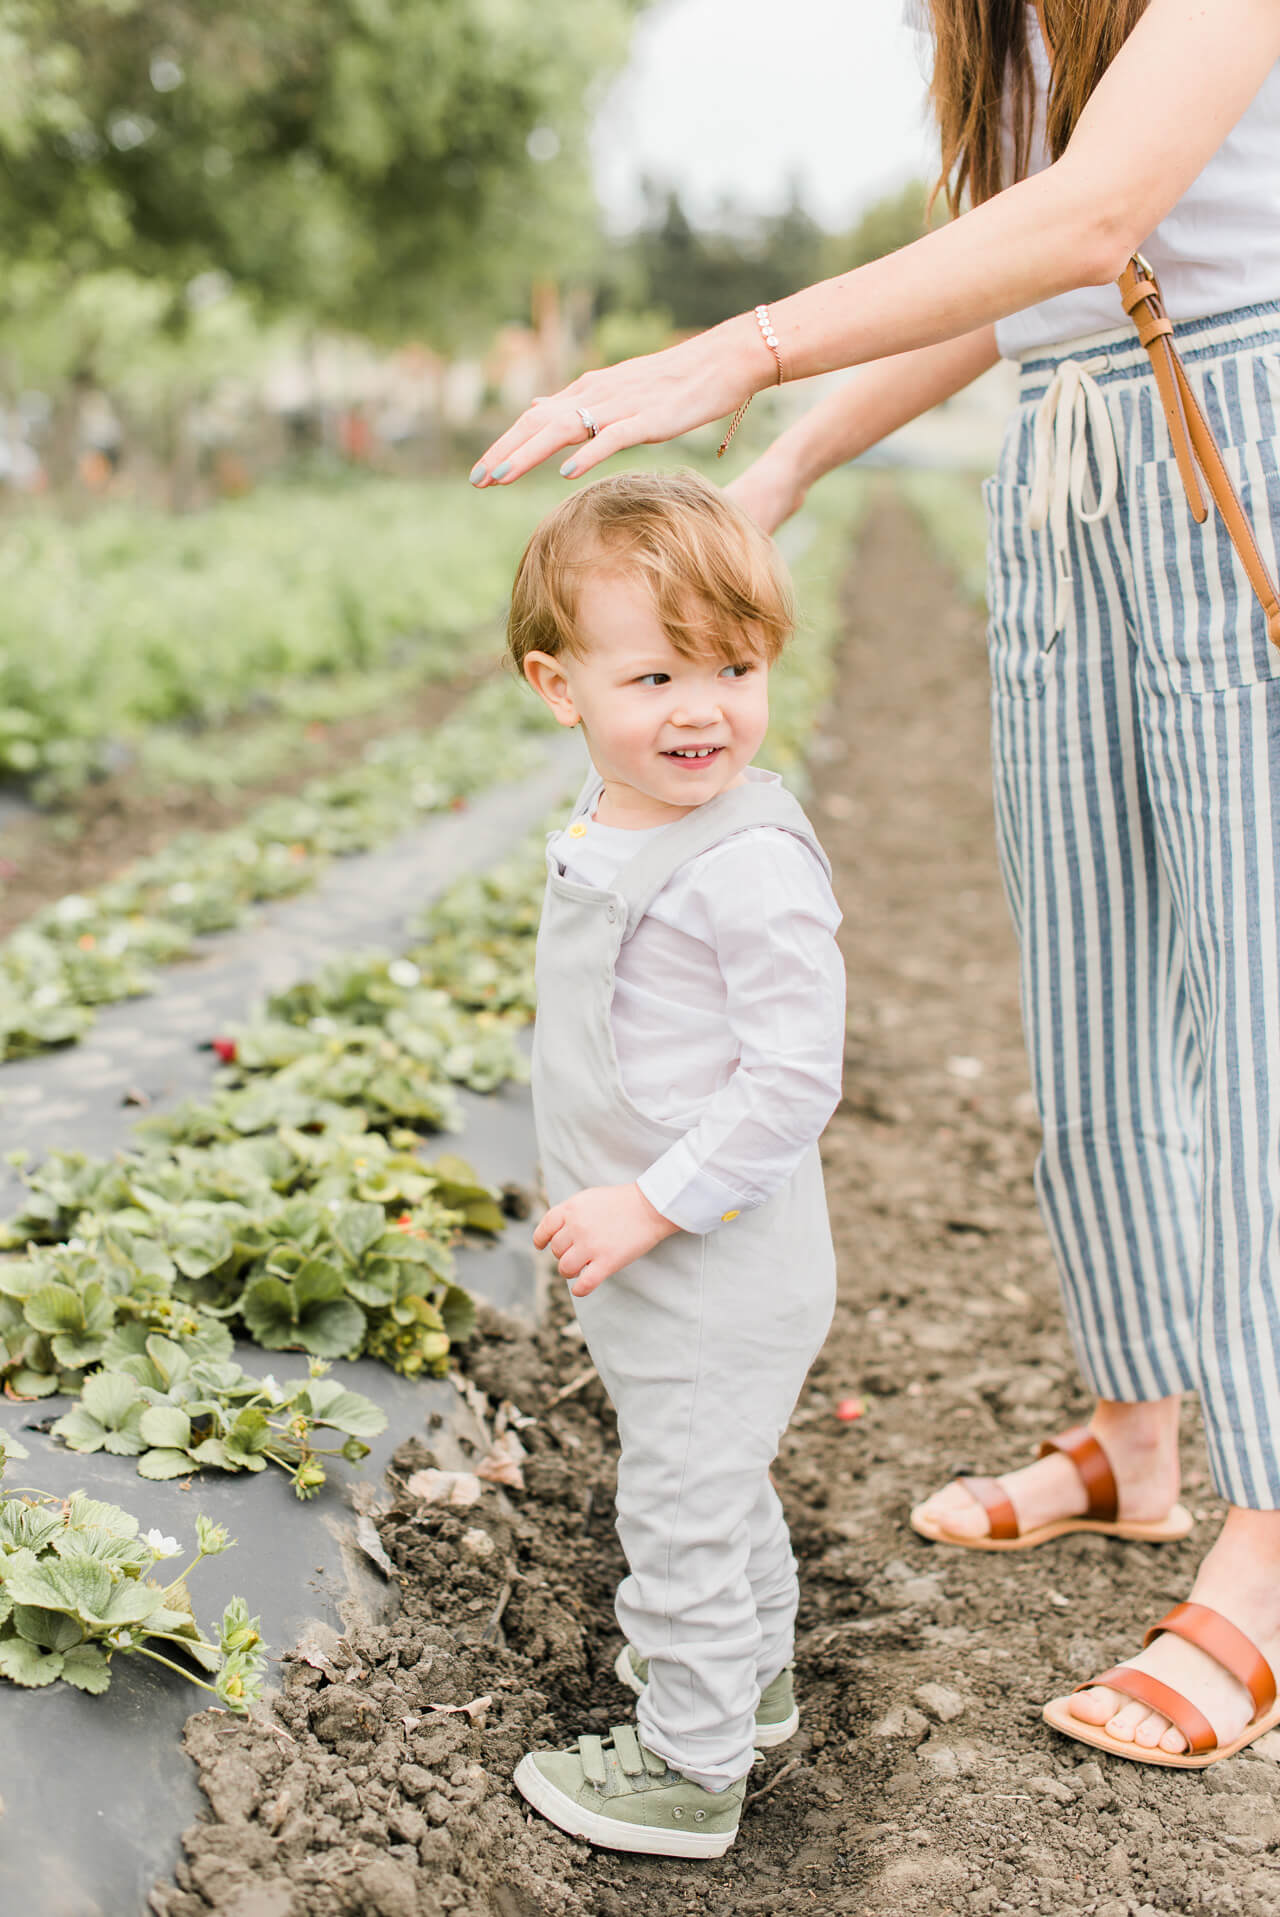 My little one loved this fun day at the farm! The perfect summer family activity!